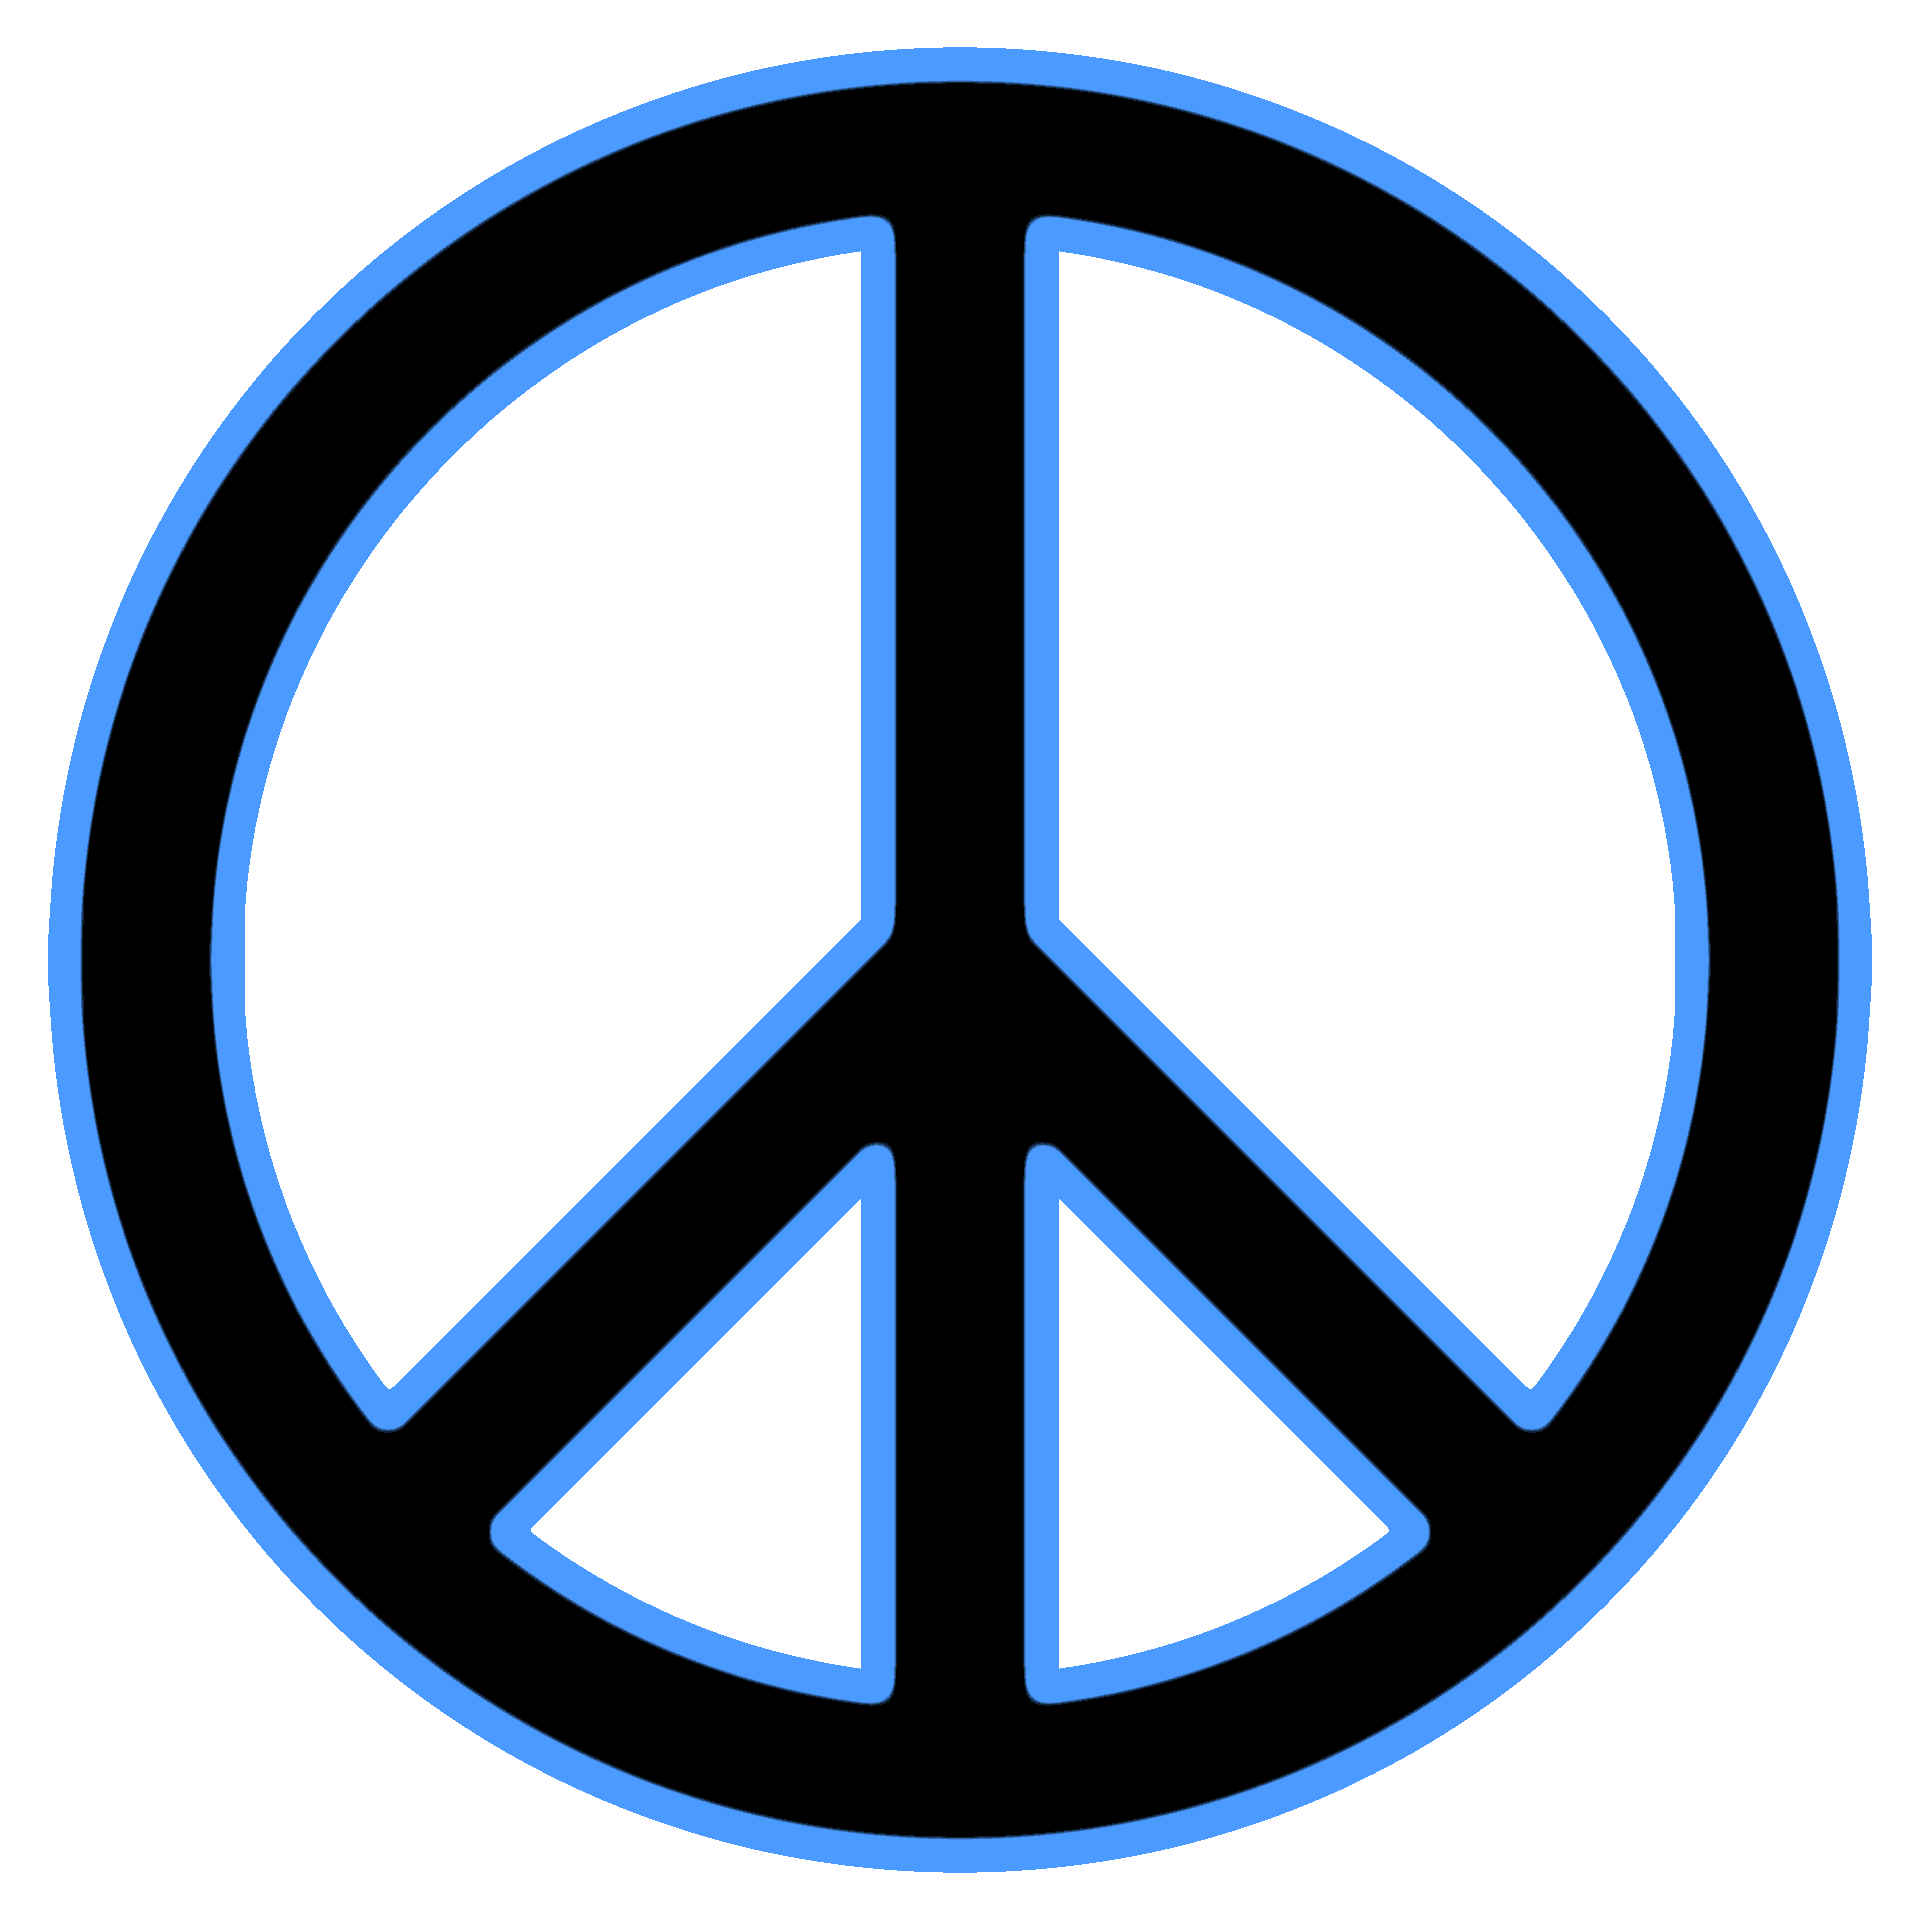 Peace sign png dab. File outline wikimedia commons